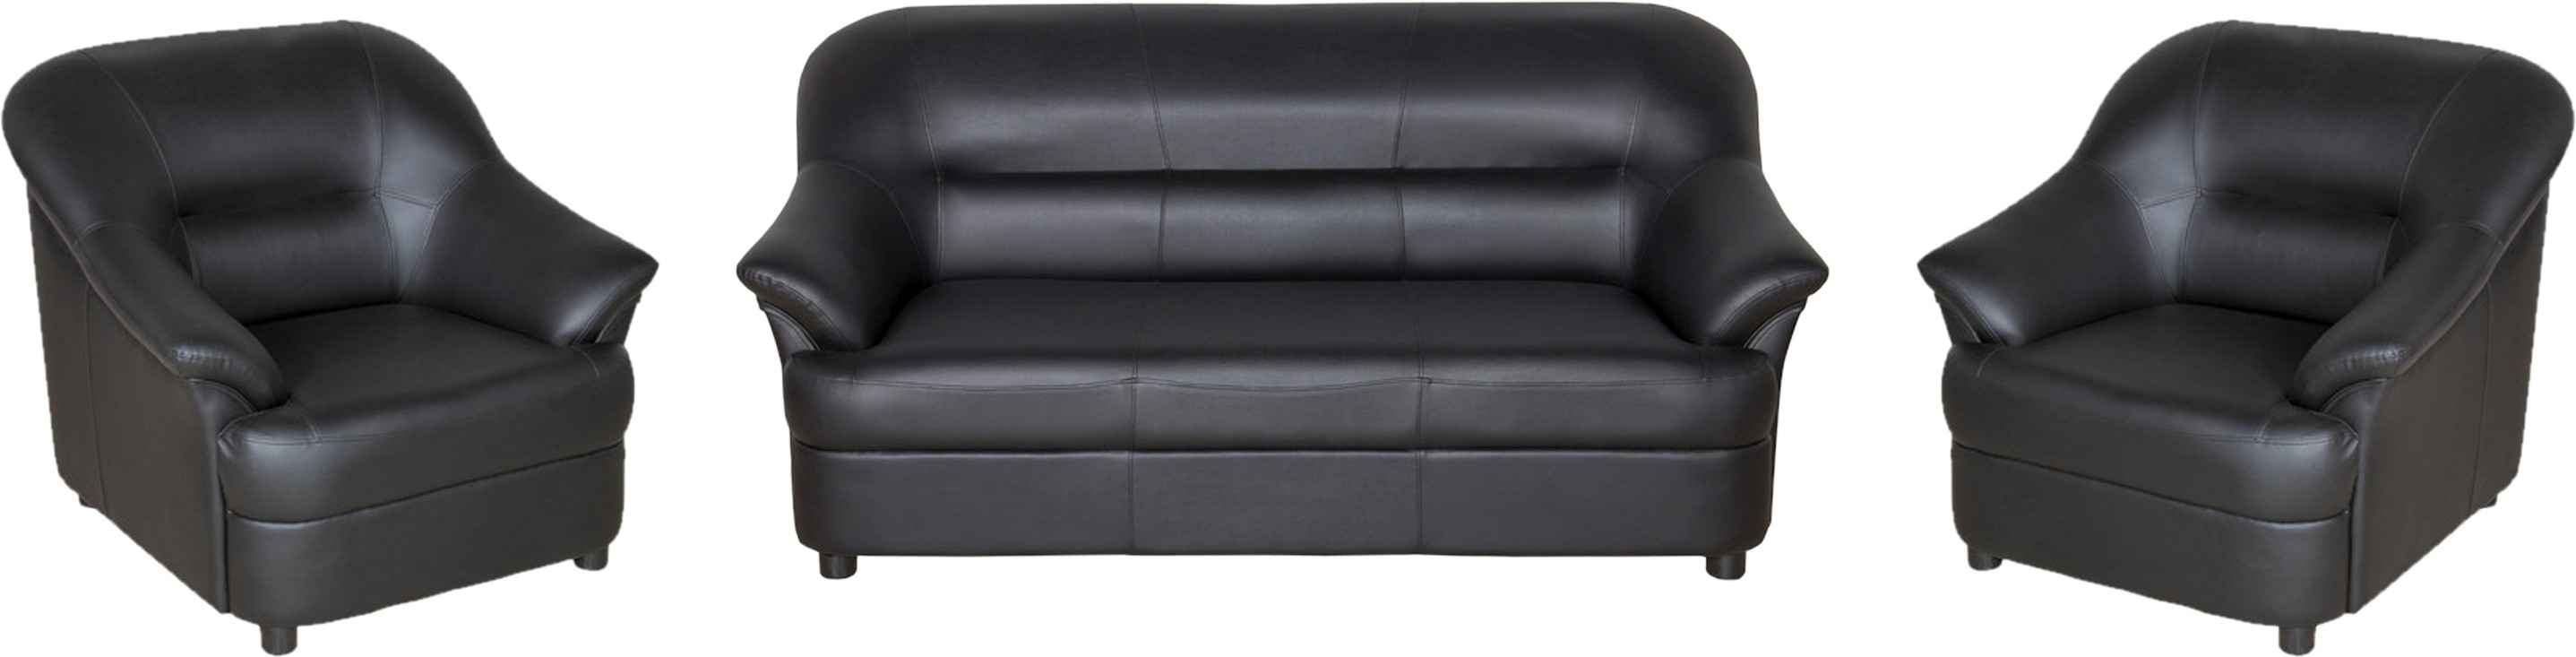 View Sethu Furniture Fabric 3 + 1 + 1 Black Sofa Set(Configuration - Straight) Furniture (Sethu Furniture)